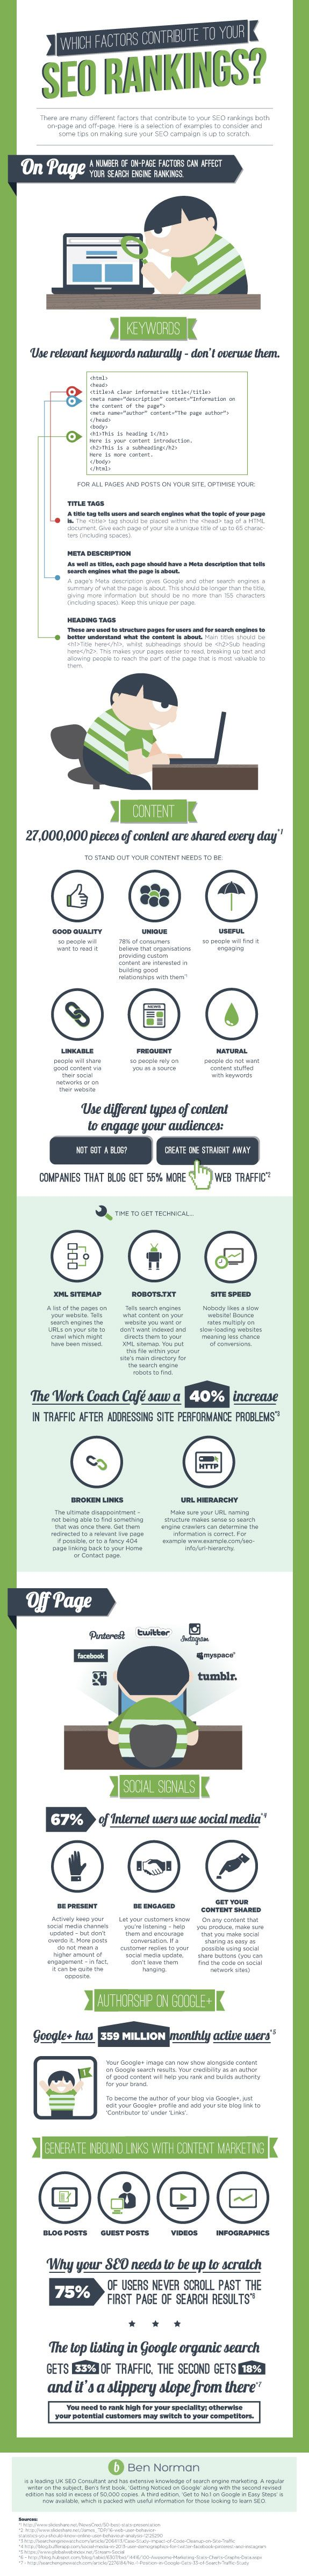 A Breakdown Of What Contributes To Your #SEO Rankings [#INFOGRAPHIC]